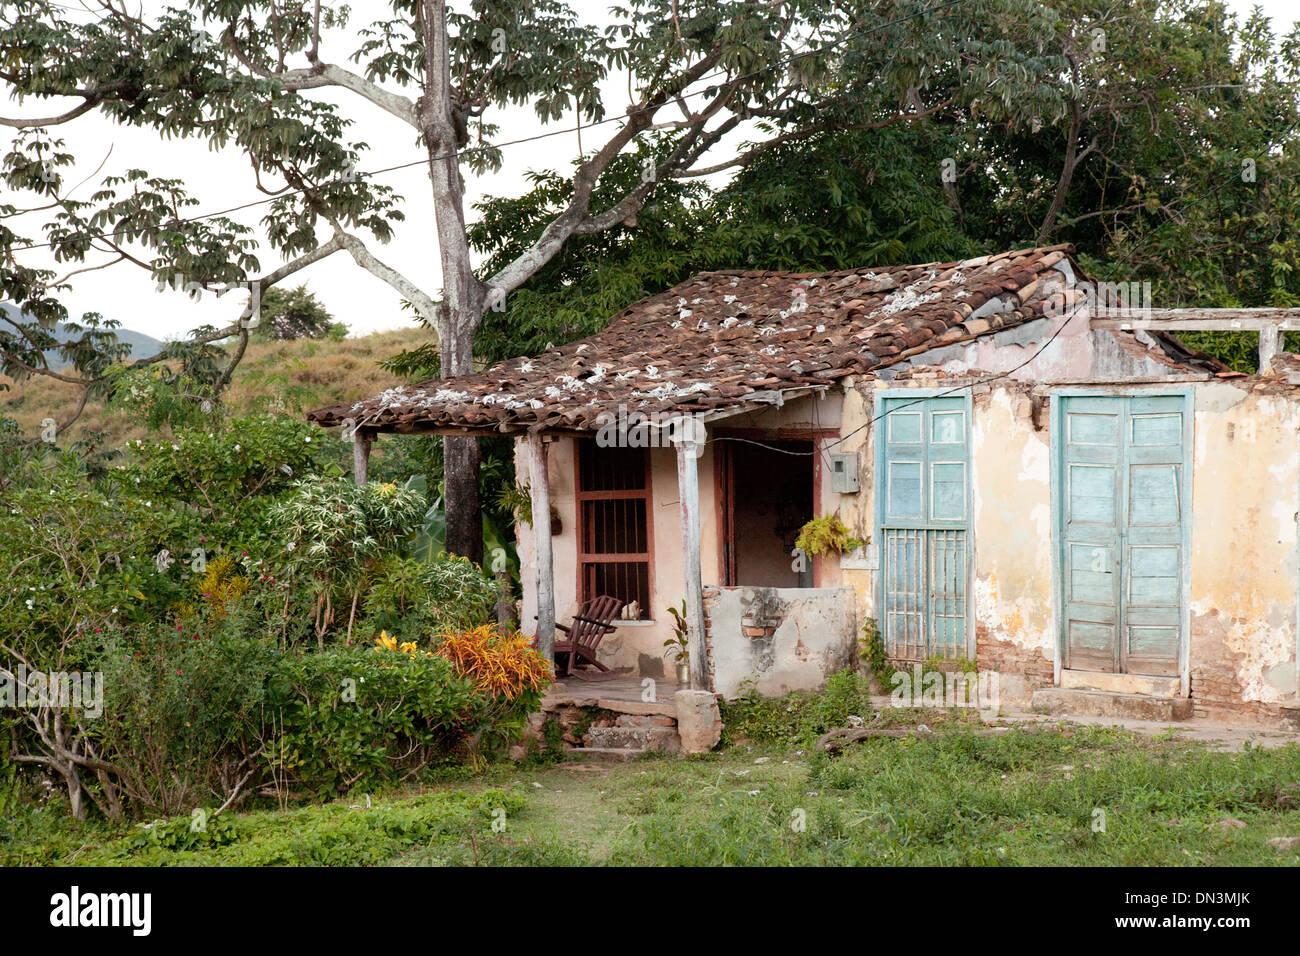 A house in Trinidad, Cuba, Caribbean, Latin America, reflecting the local poverty - Stock Image